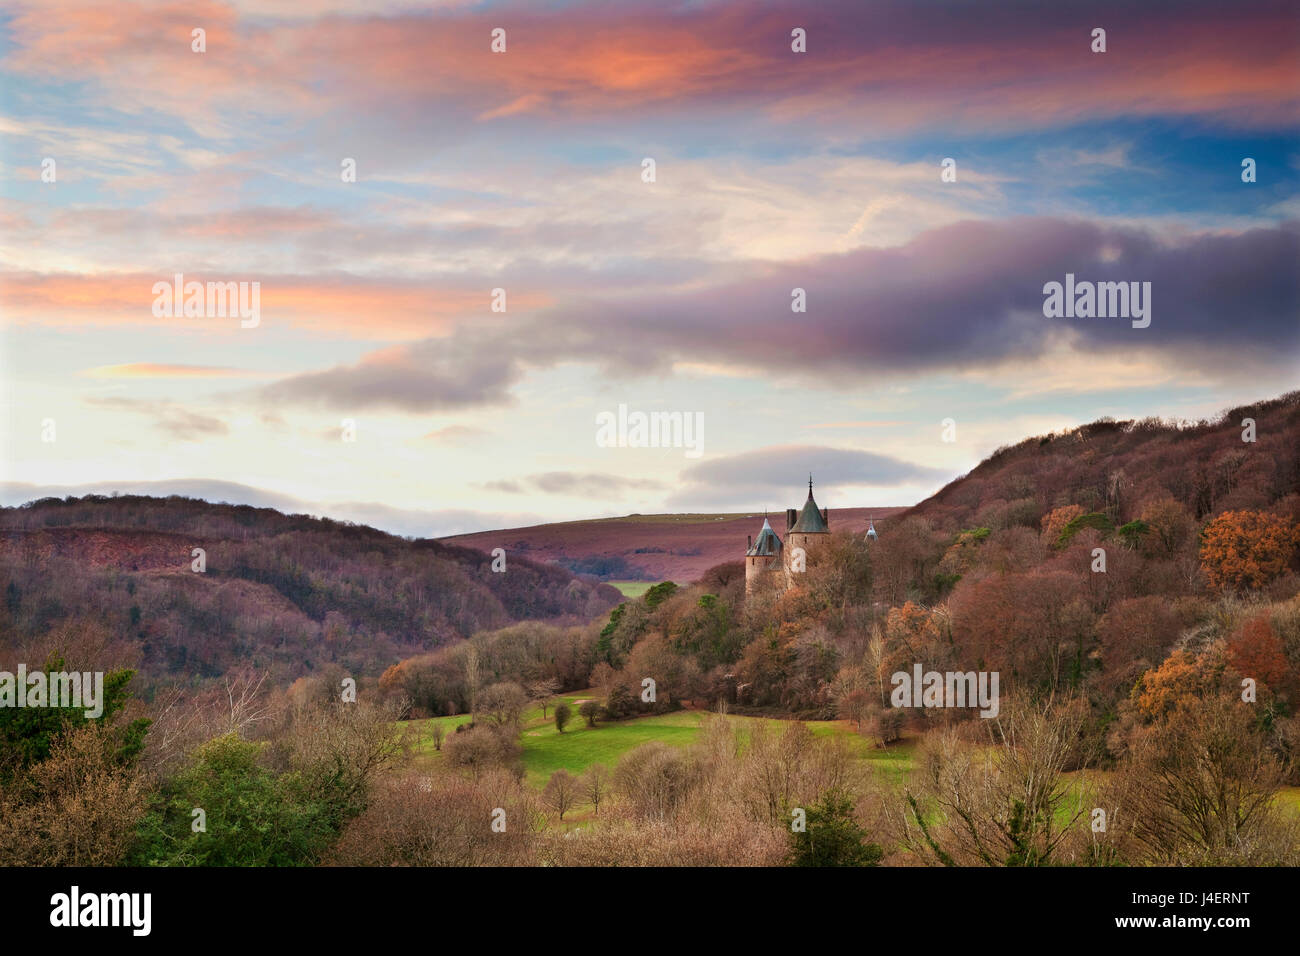 Castle Coch (Castell Coch) (The Red Castle), Tongwynlais, Cardiff, Wales, United Kingdom, Europe - Stock Image